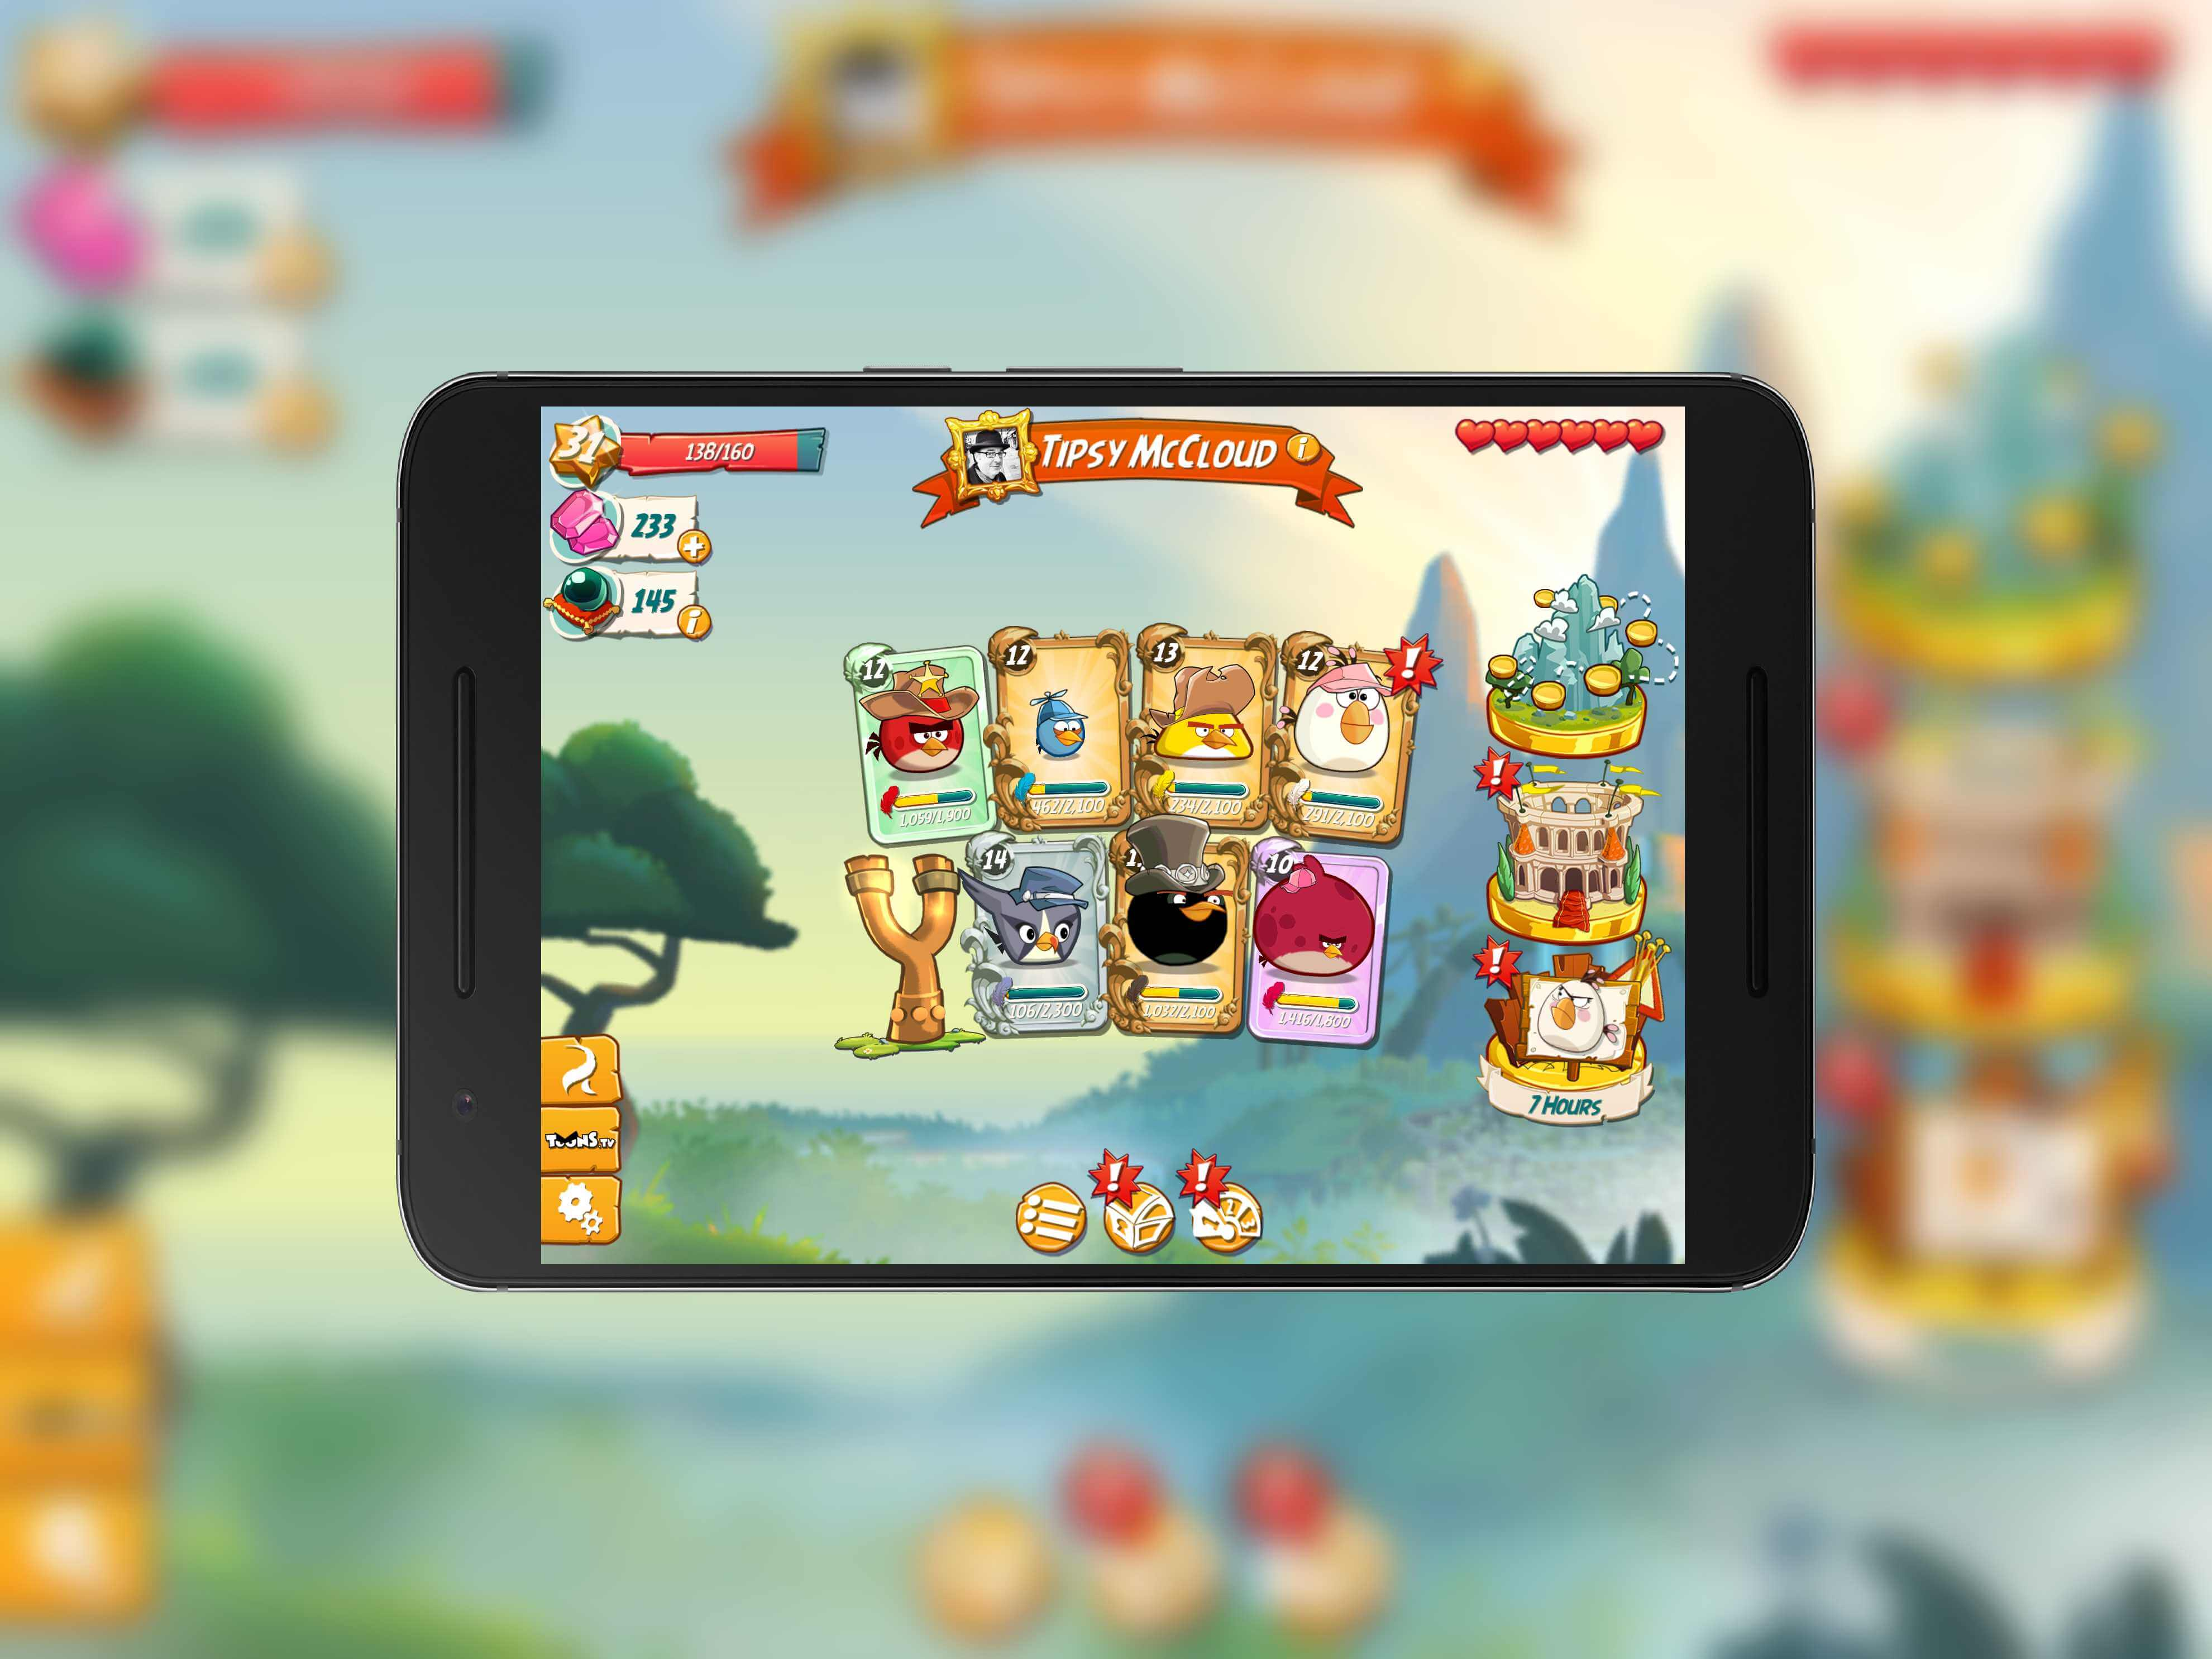 Angry Birds 2 New Home Screen